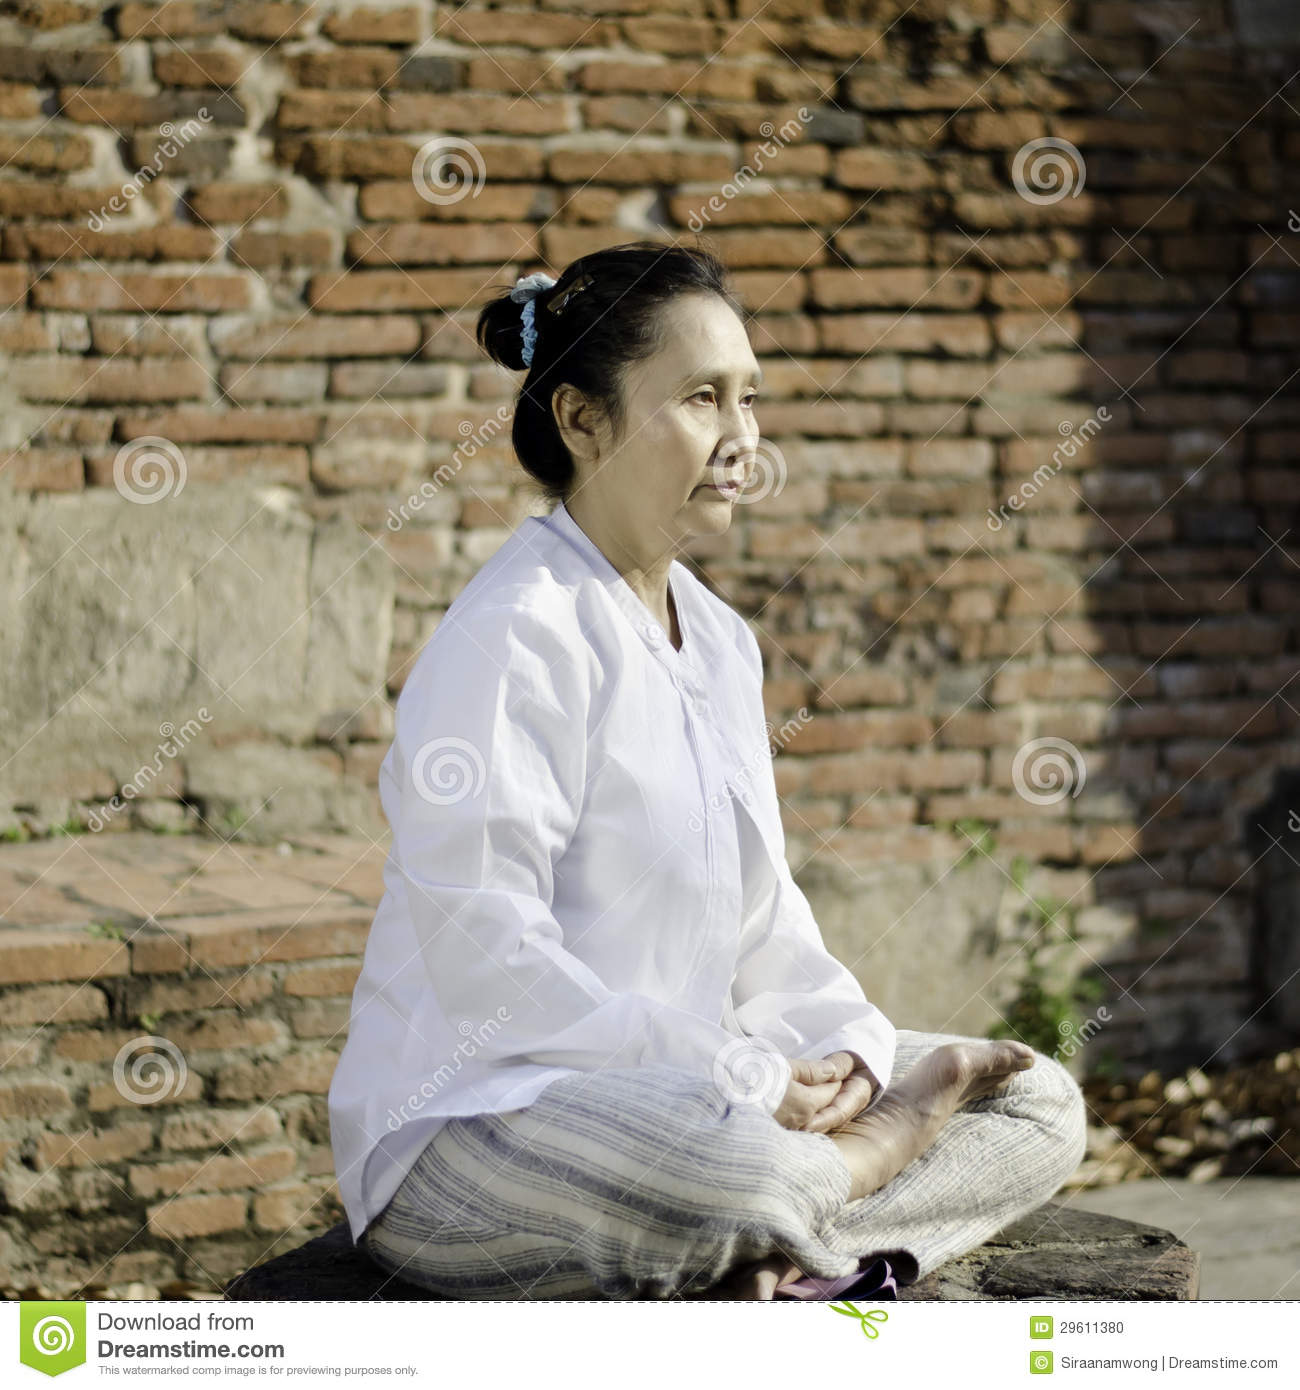 buddhist single women in early Wish to explore here is that what we find in the early buddhist texts is not a single,  point regarding the place of women in early buddhism: traditional.